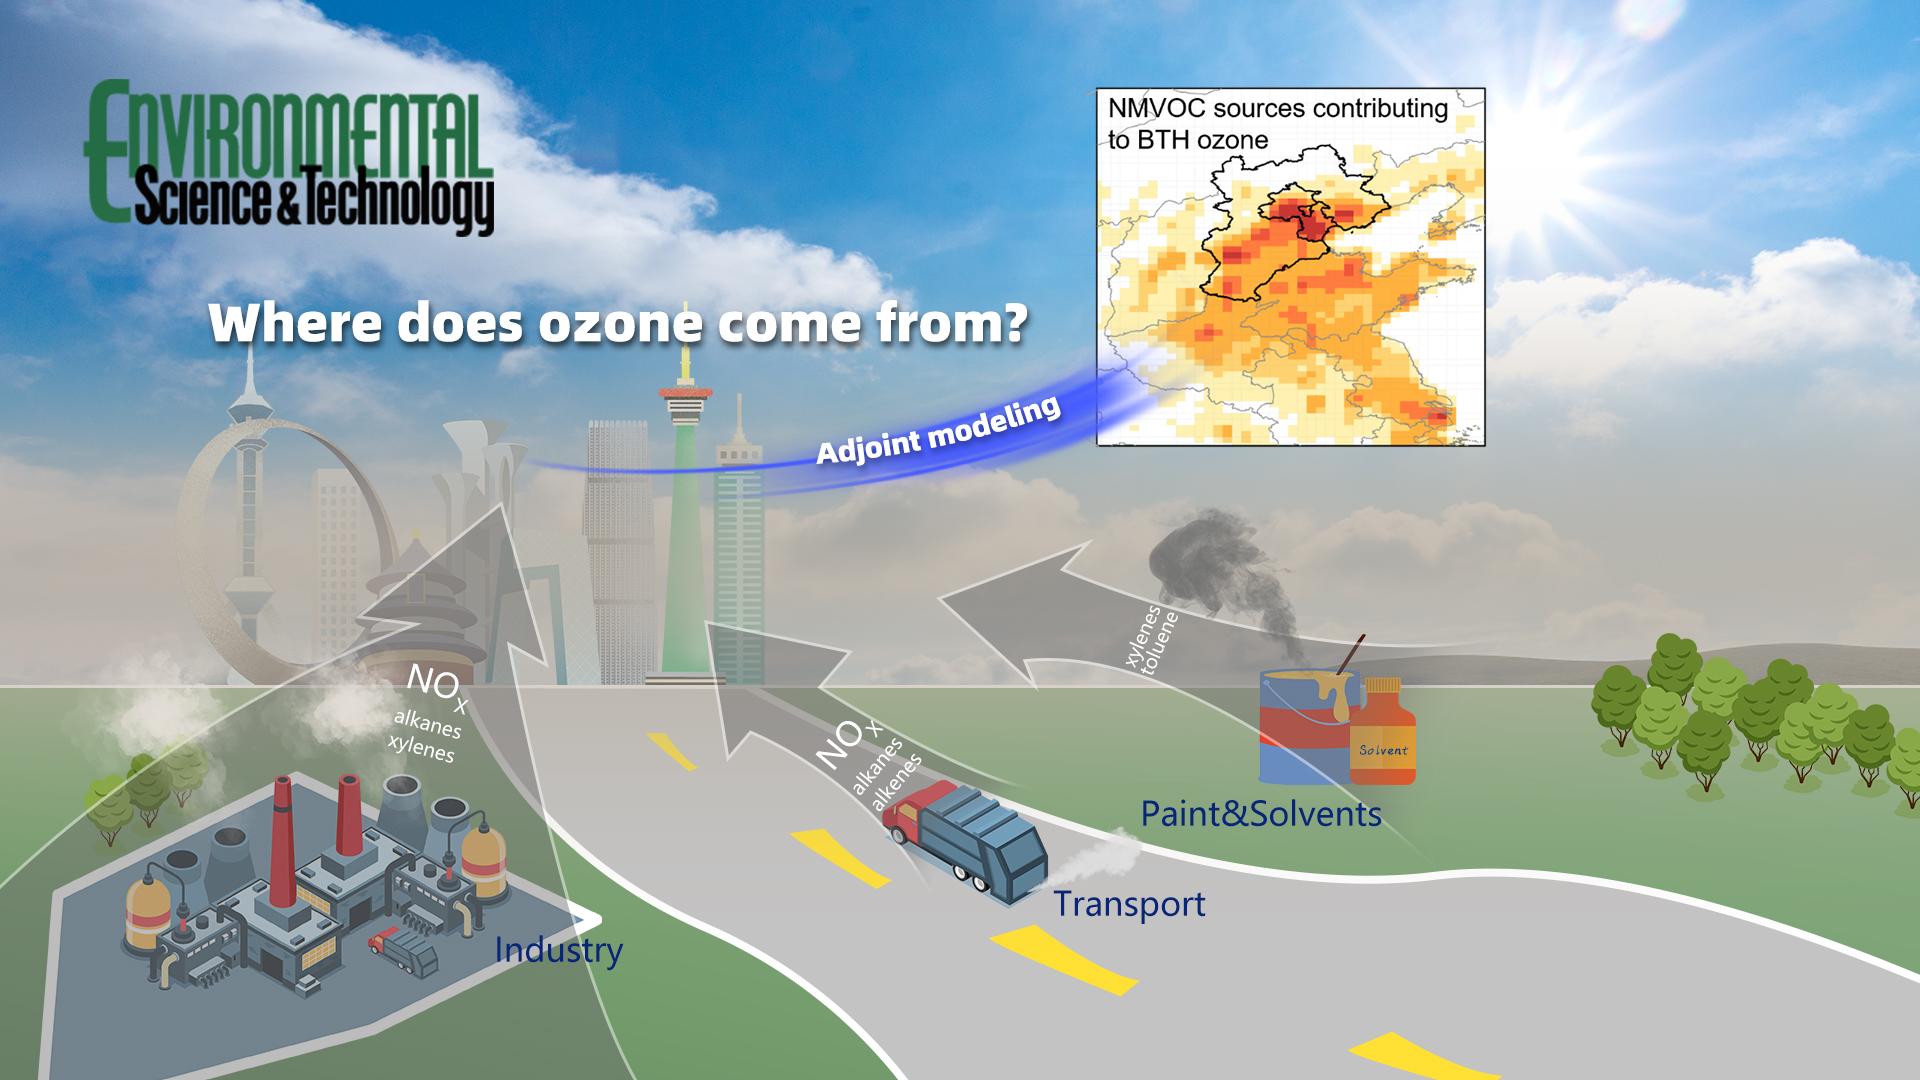 Researchers collaborate to pinpoint sources of ozone pollution in the Beijing−Tianjin−Hebei area using adjoint modeling